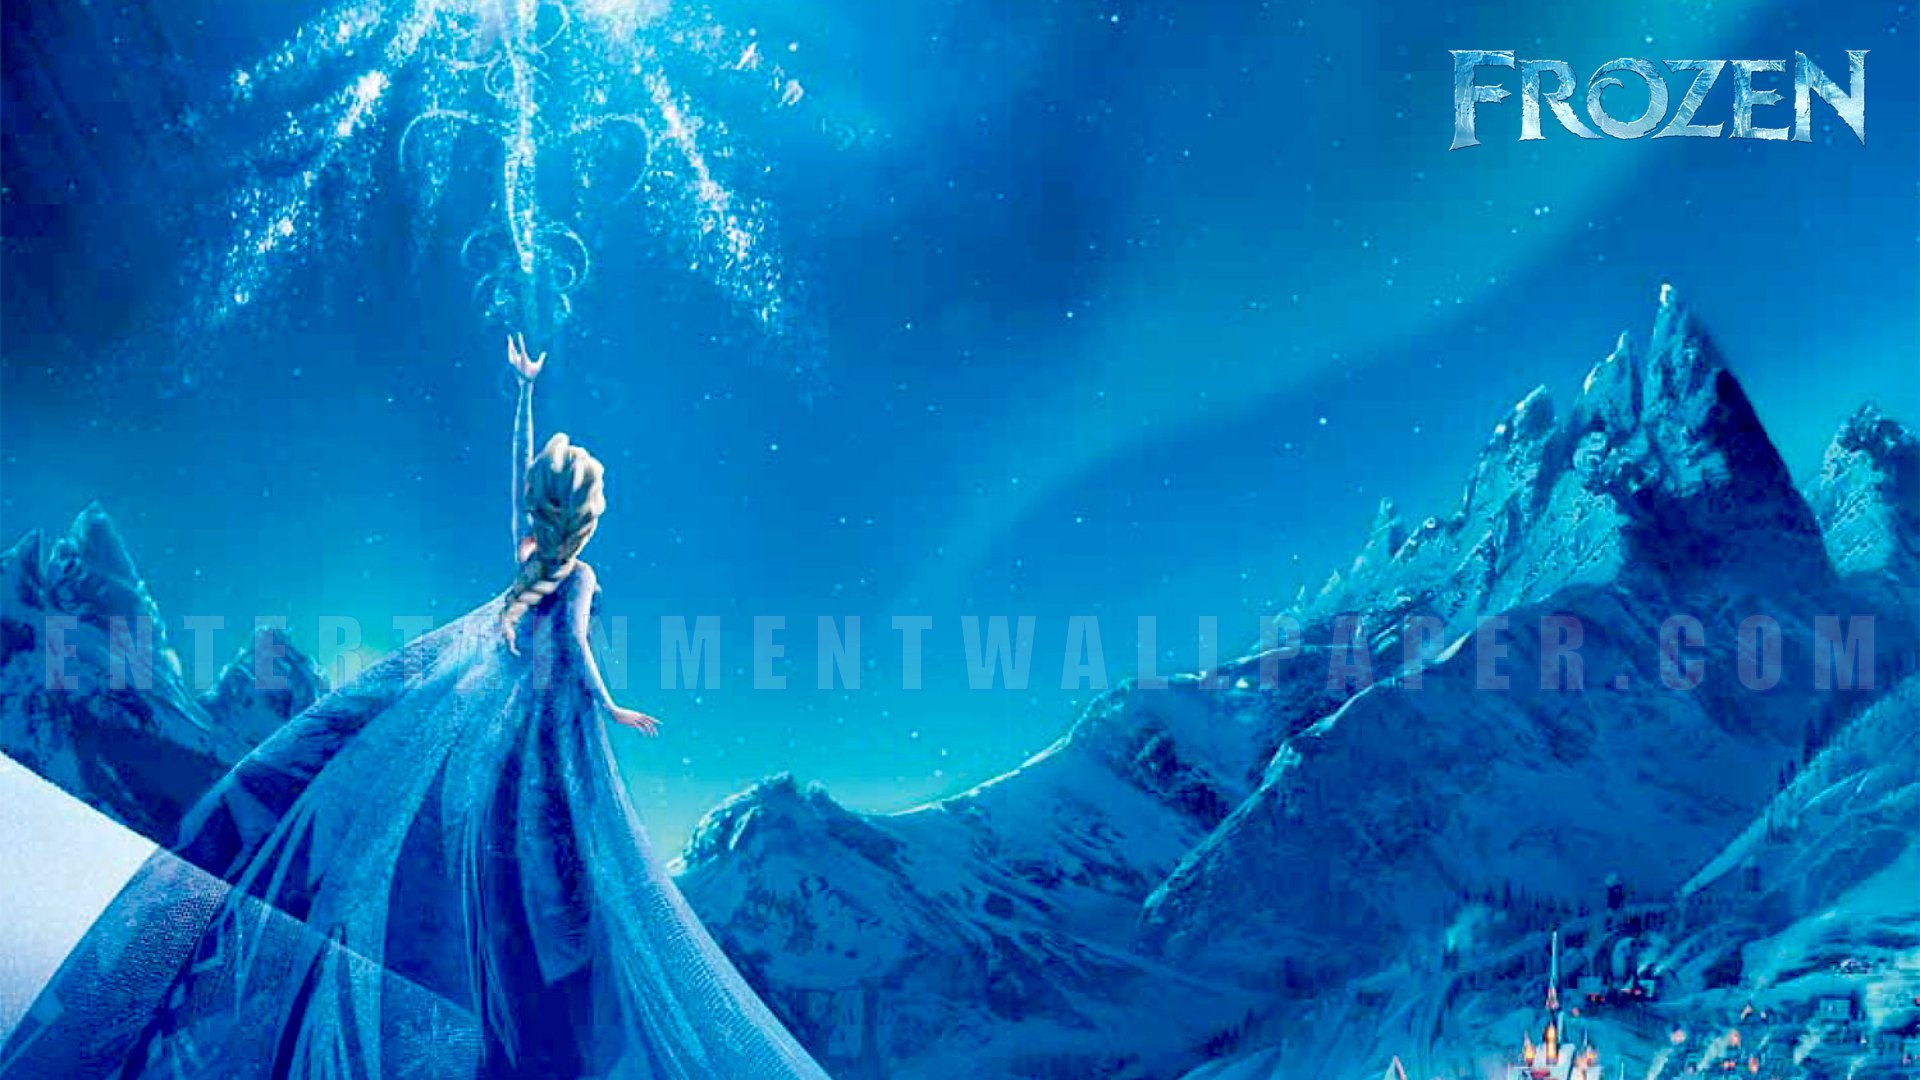 disney frozen wallpaper | 1920x1080 | #48357